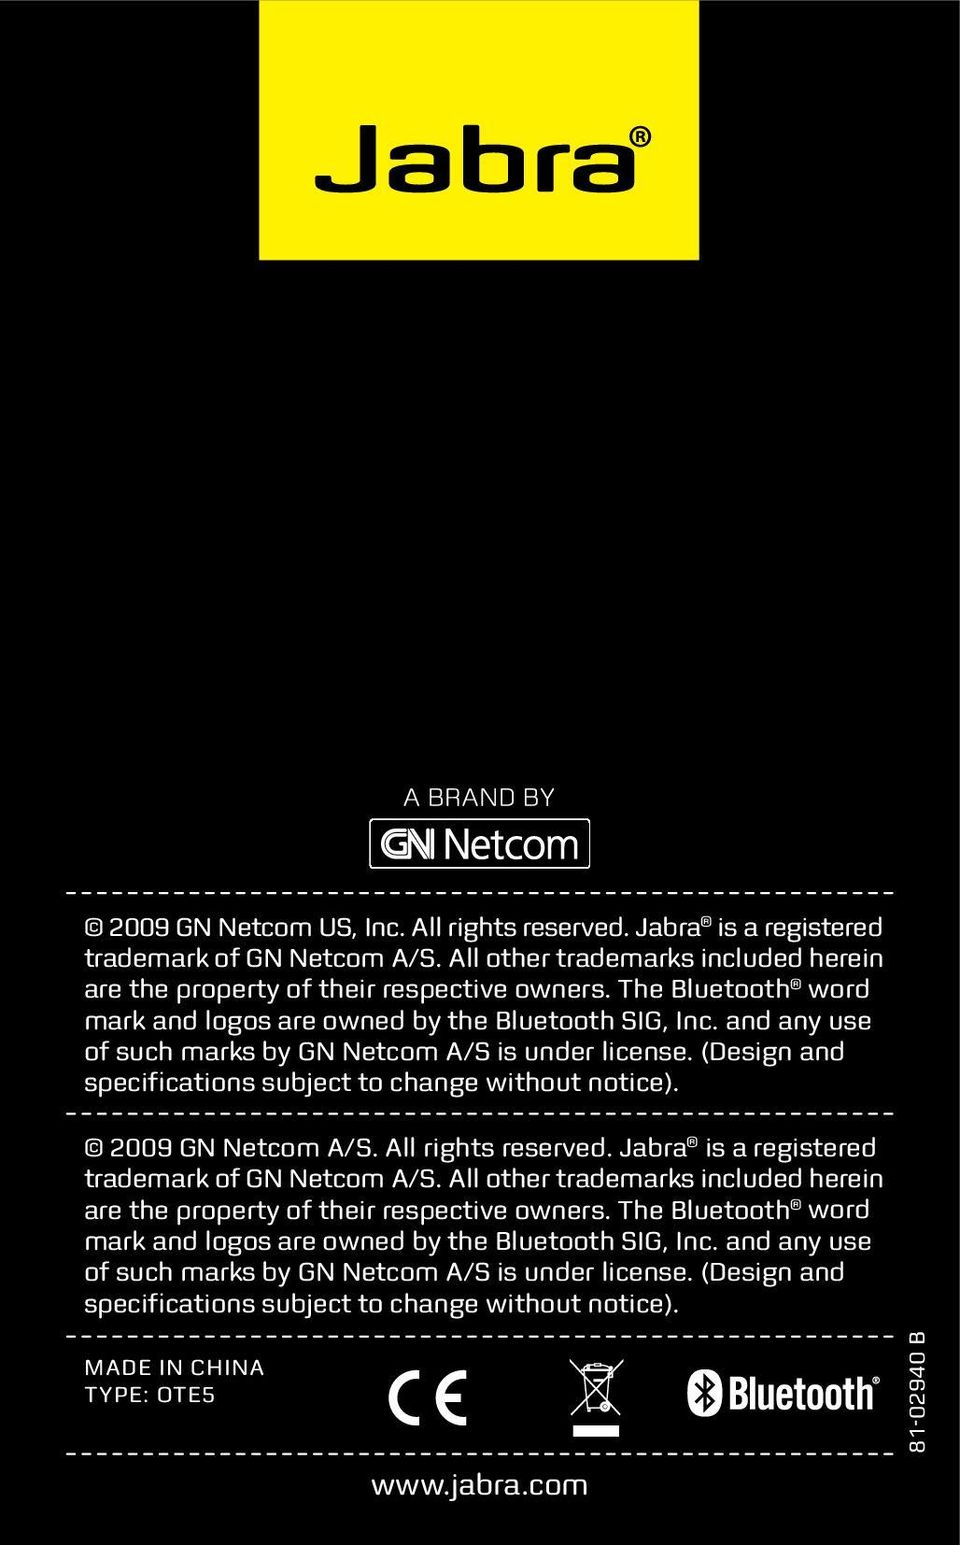 2009 GN Netcom A/S. All rights reserved. Jabra is a registered trademark of GN Netcom A/S. All other trademarks included herein are the property of their respective owners.